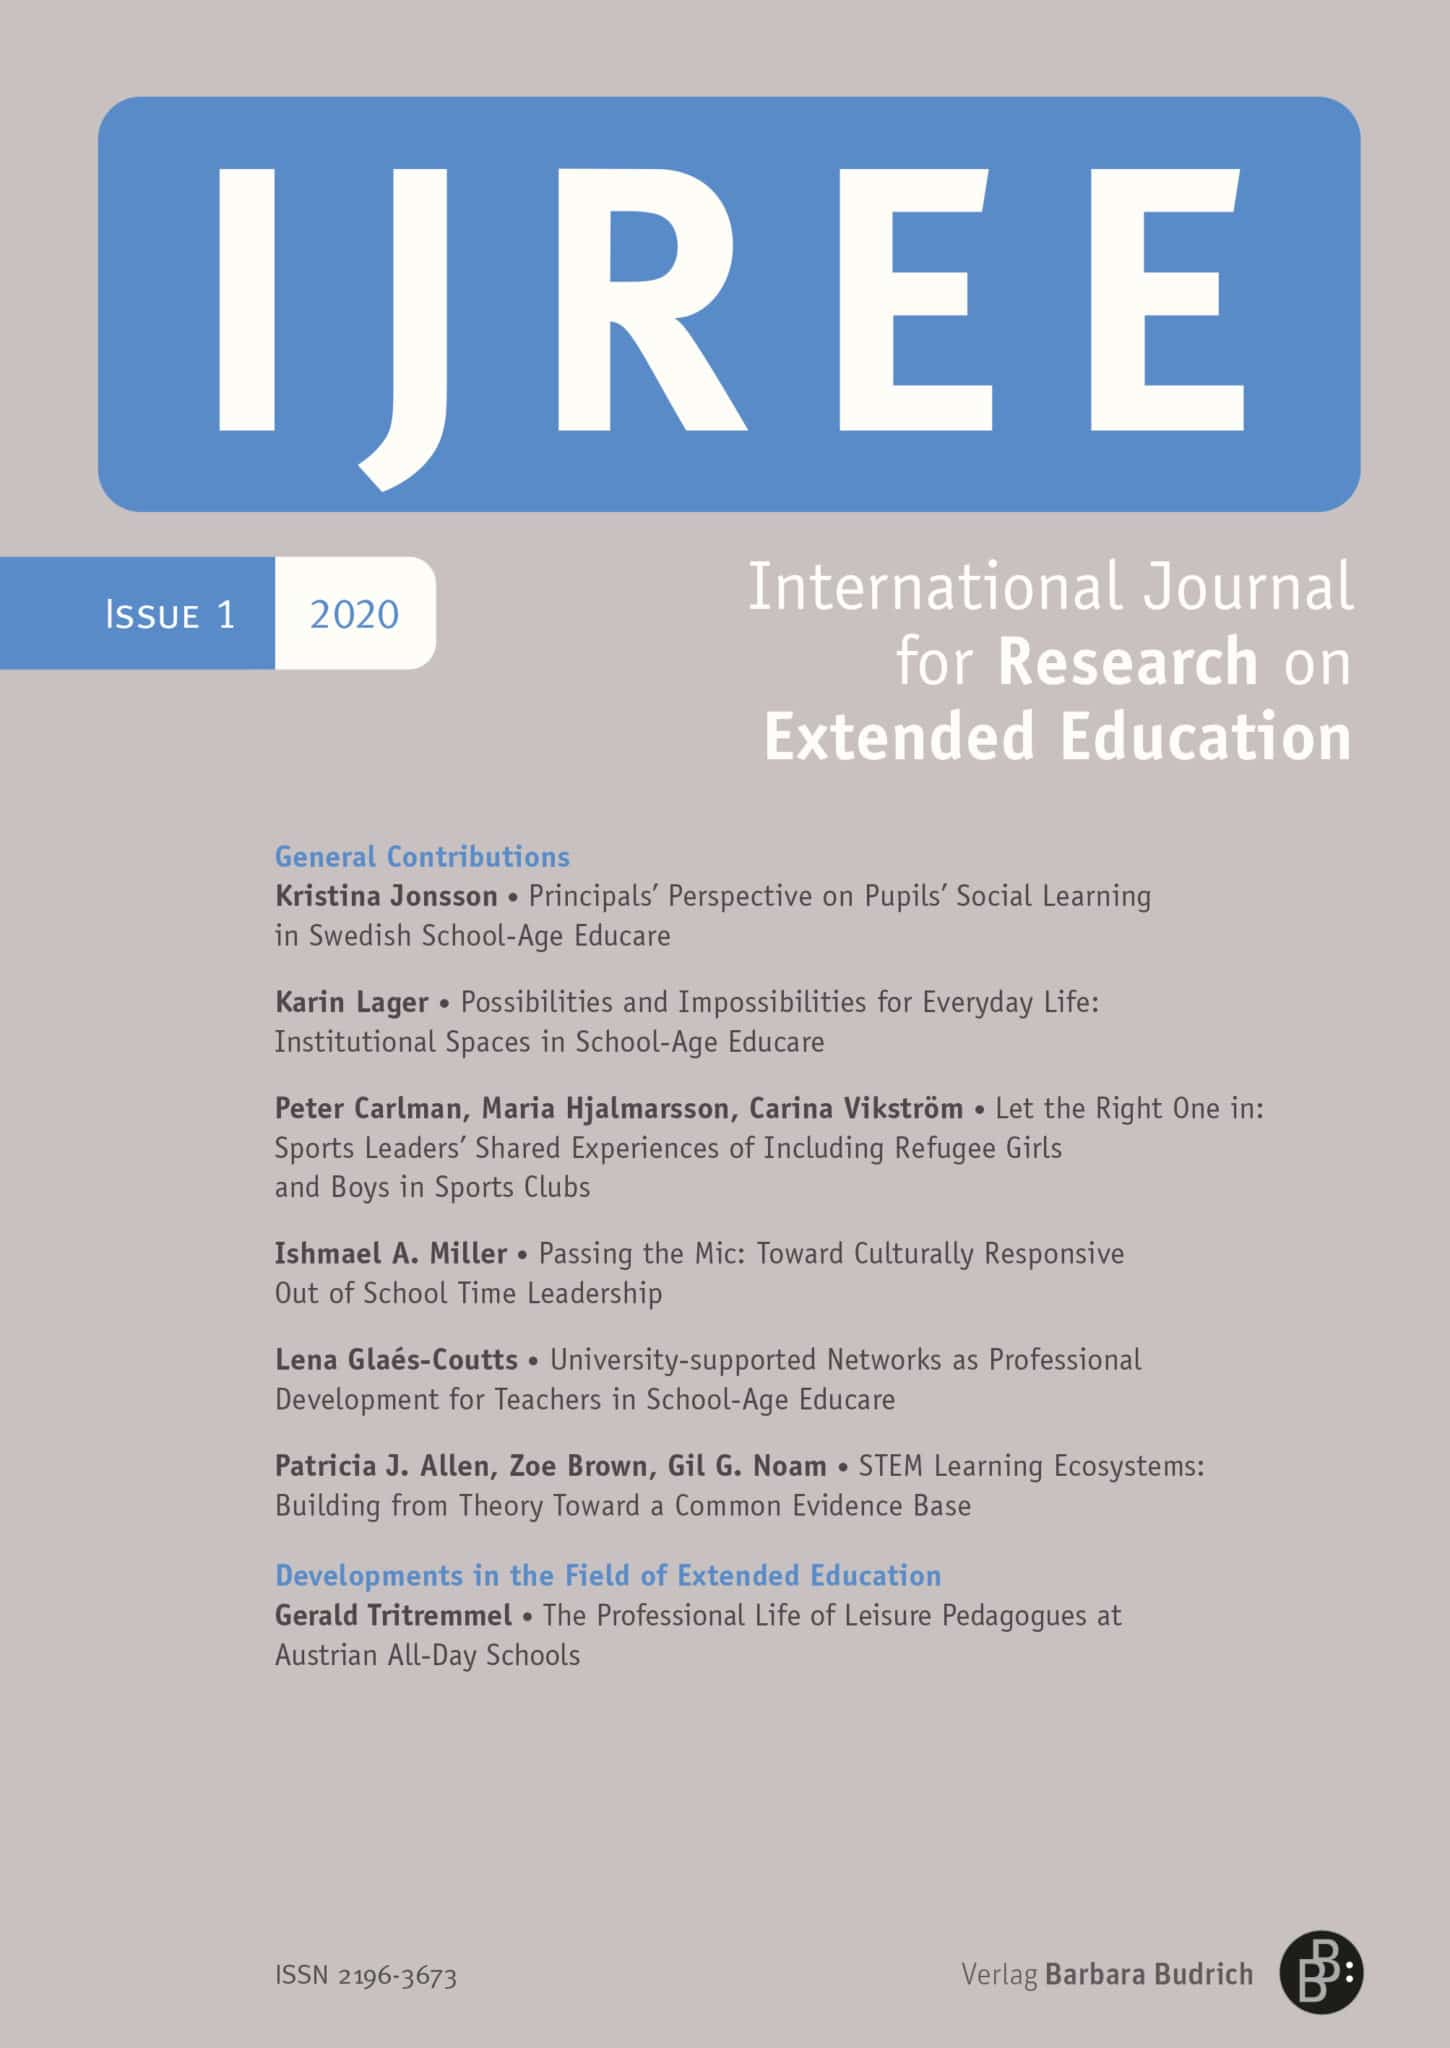 IJREE – International Journal for Research on Extended Education 1-2020: Free Contributions